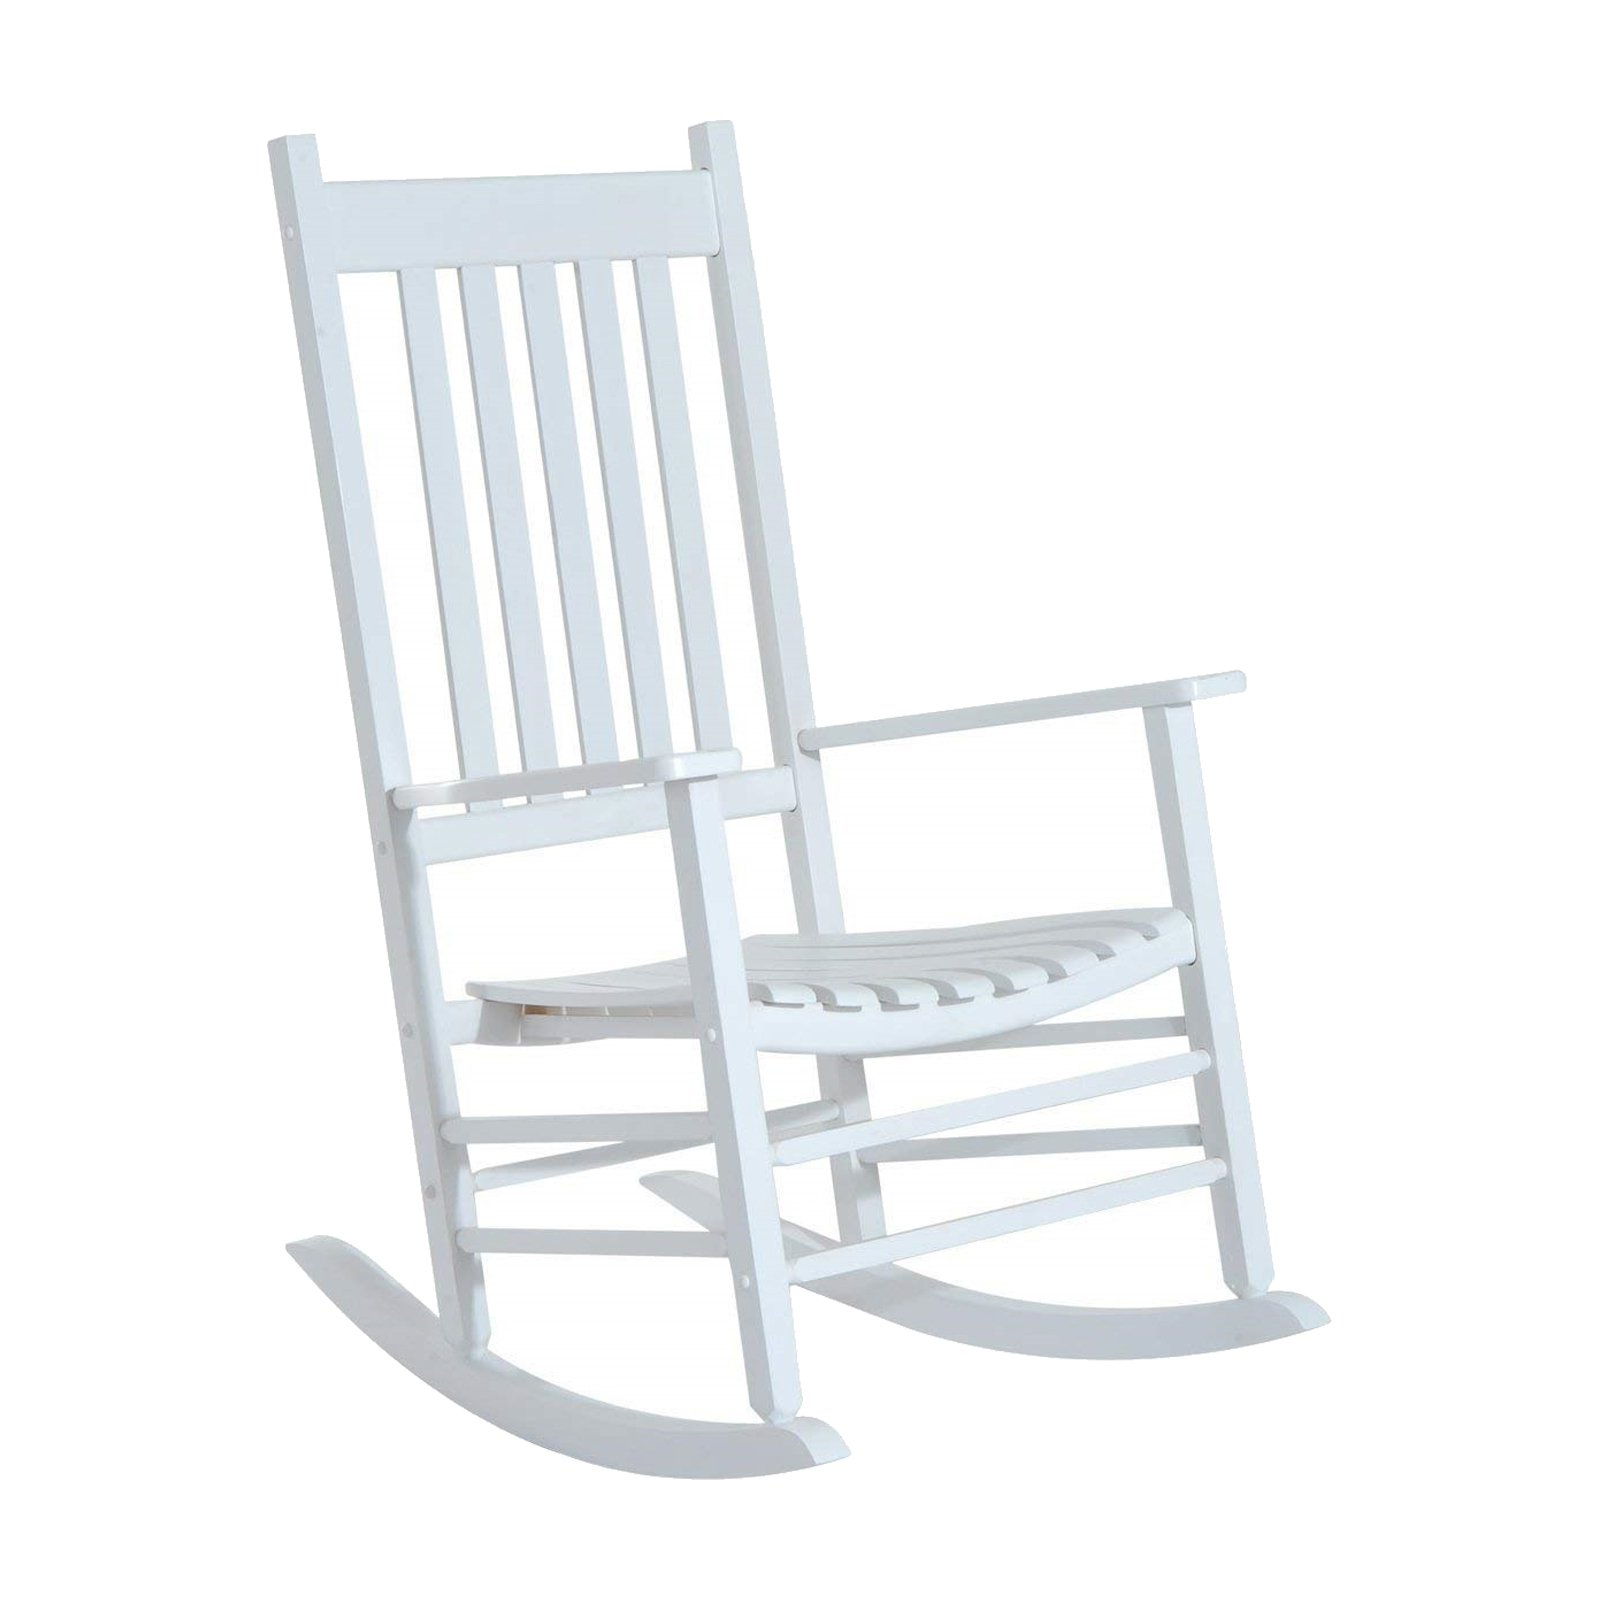 Outsunny Versatile Indoor/outdoor High Back Wooden Rocking Pertaining To Traditional Style Wooden Rocking Chairs With Contoured Seat, Black (#17 of 20)